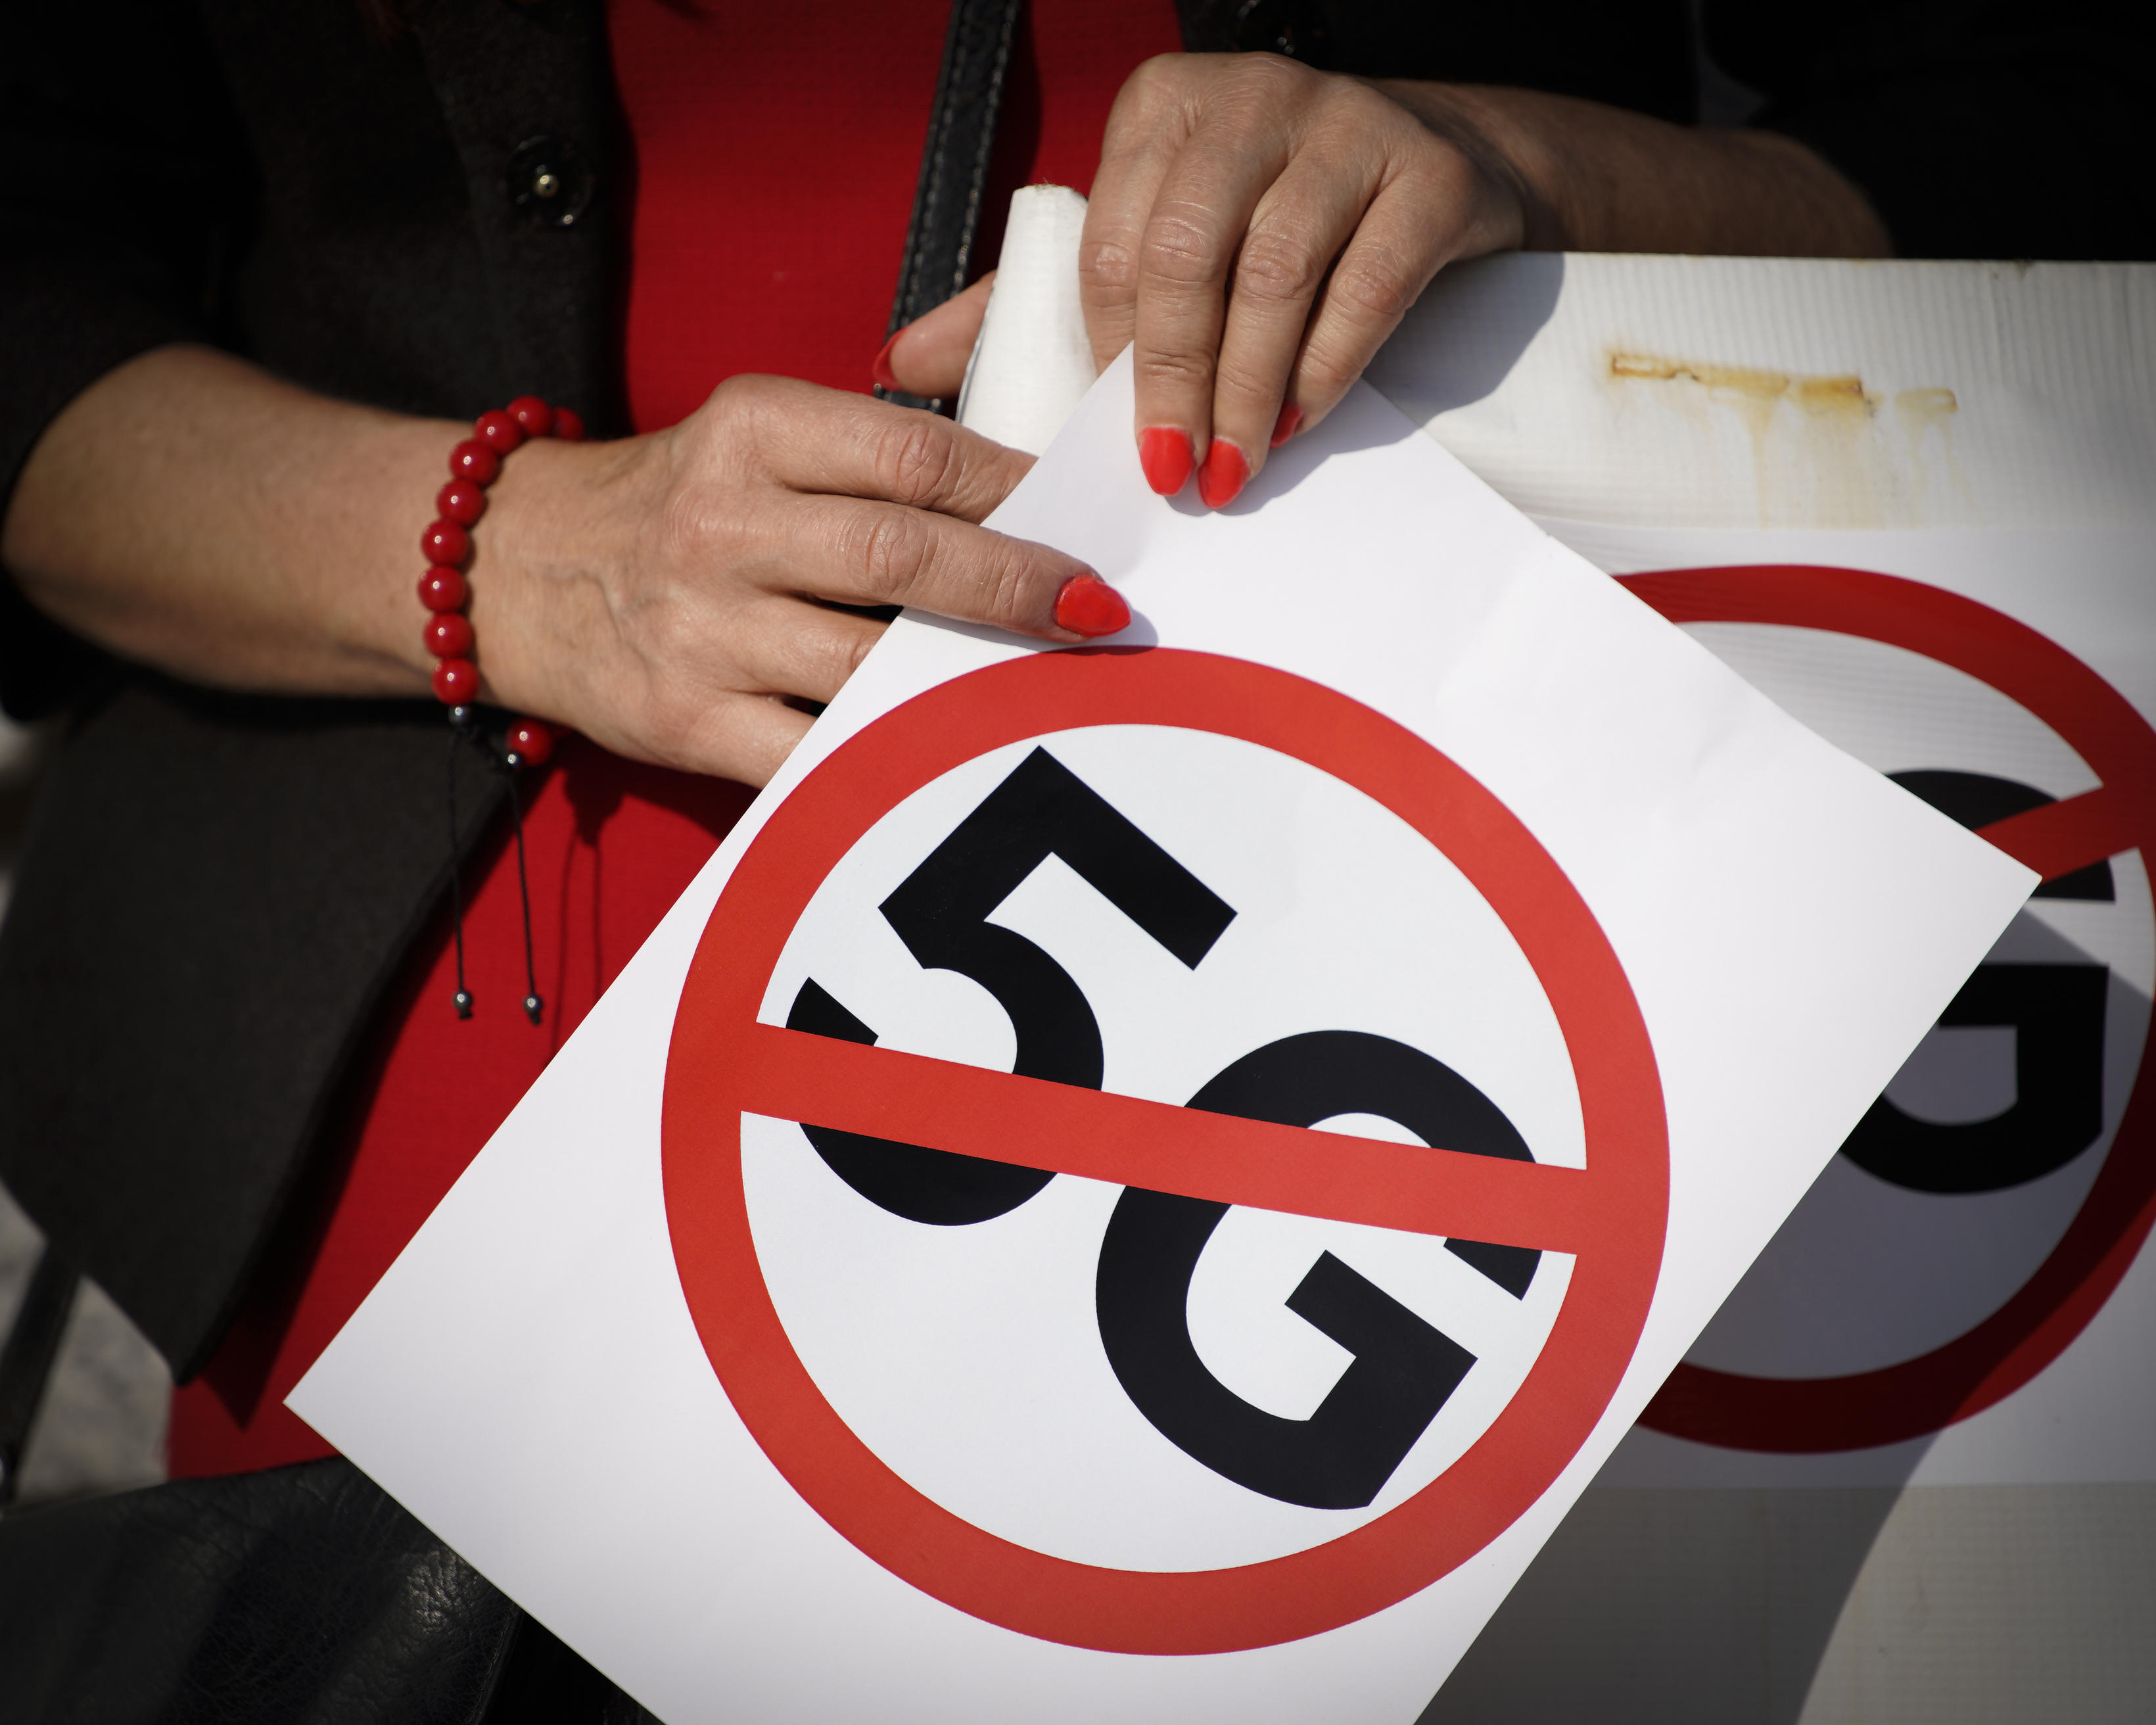 <p>Activists fear radiation from 5G wireless service could be dangerous to public health. And they want more research done before carriers deploy the technology.&nbsp;</p>